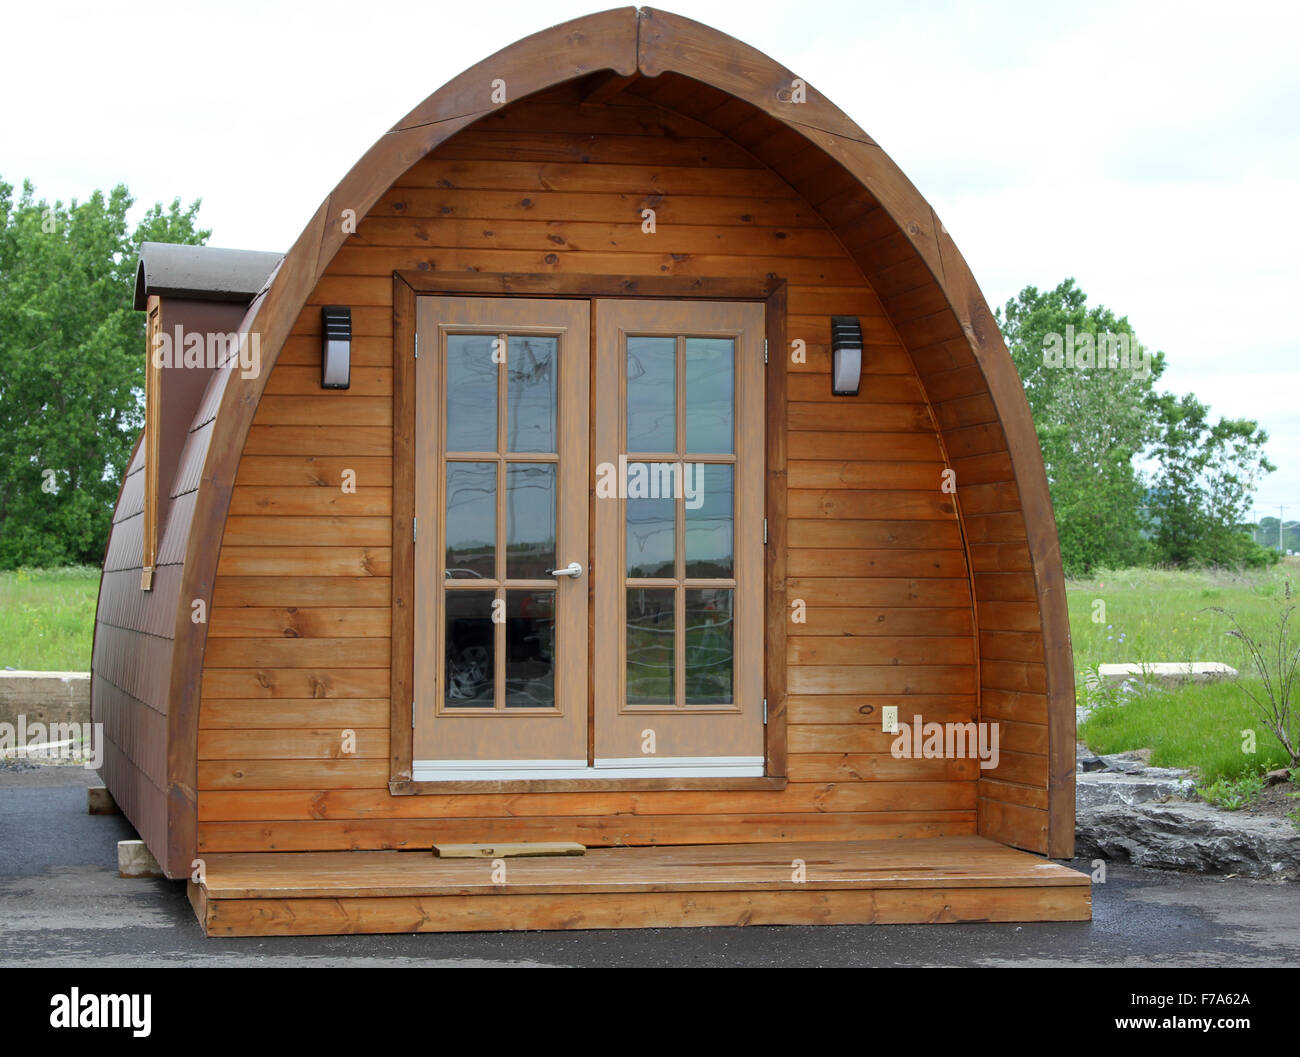 Tiny arched cabin with glass french doors Stock Photo, Royalty ...